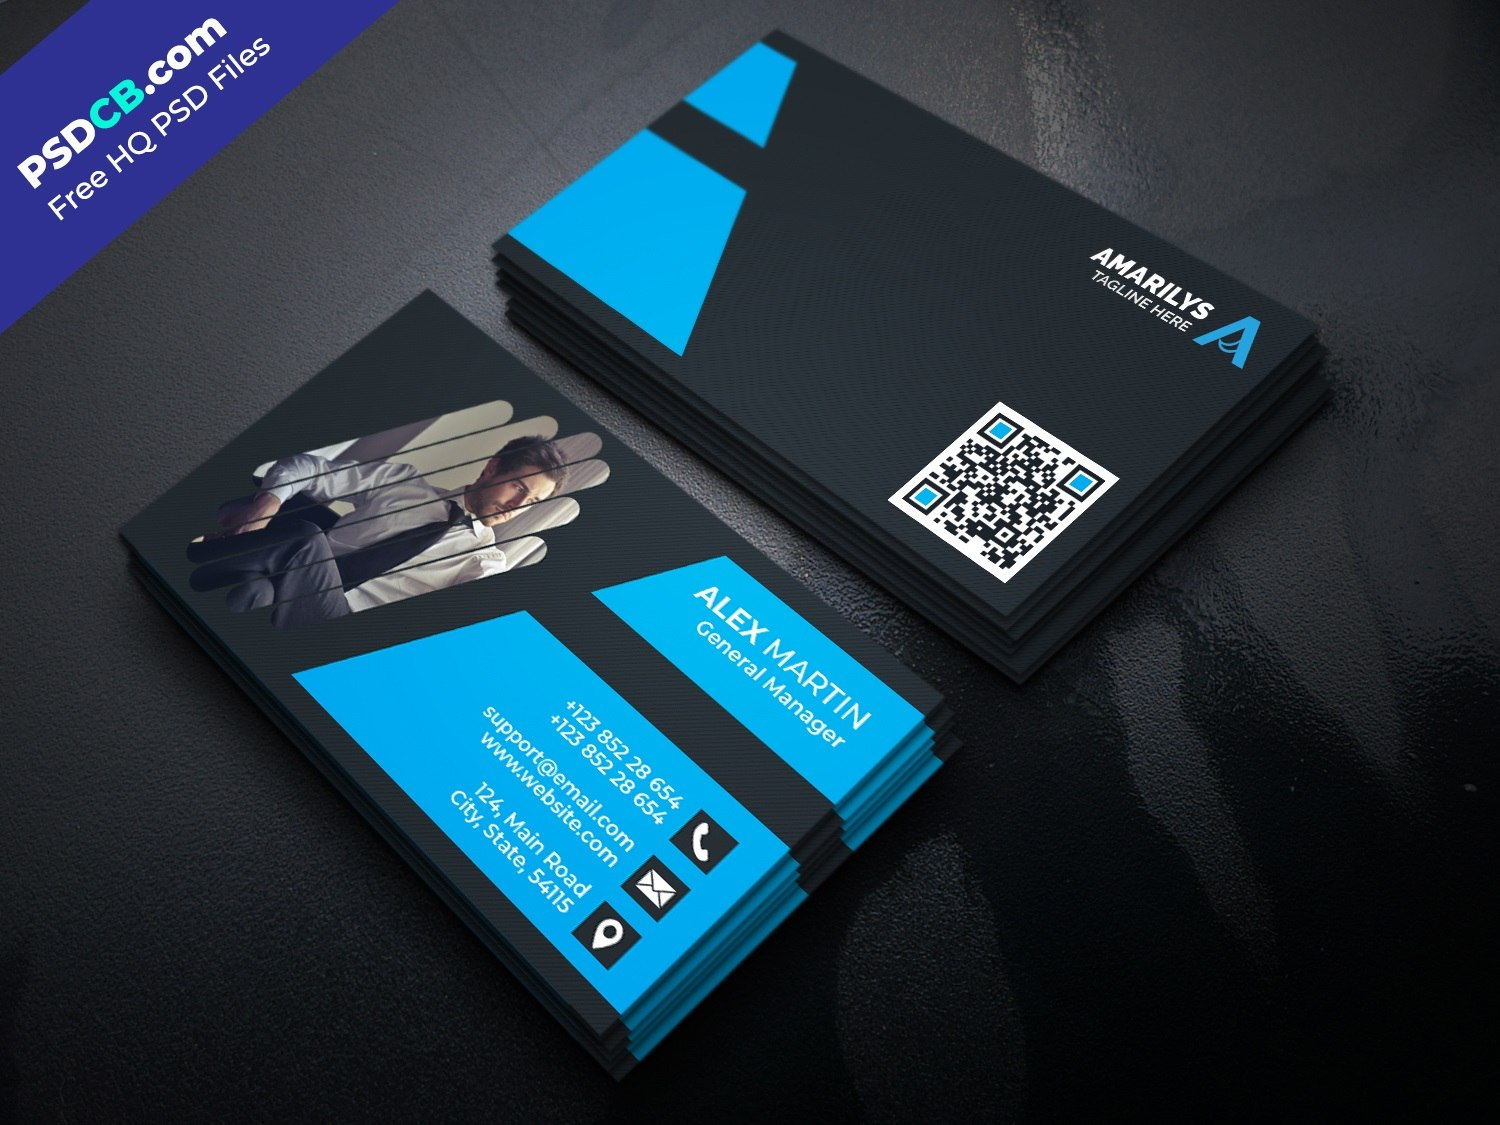 Business Card Free Psd Files At Psdcb With Regard To Free Business Card Templates In Psd Format